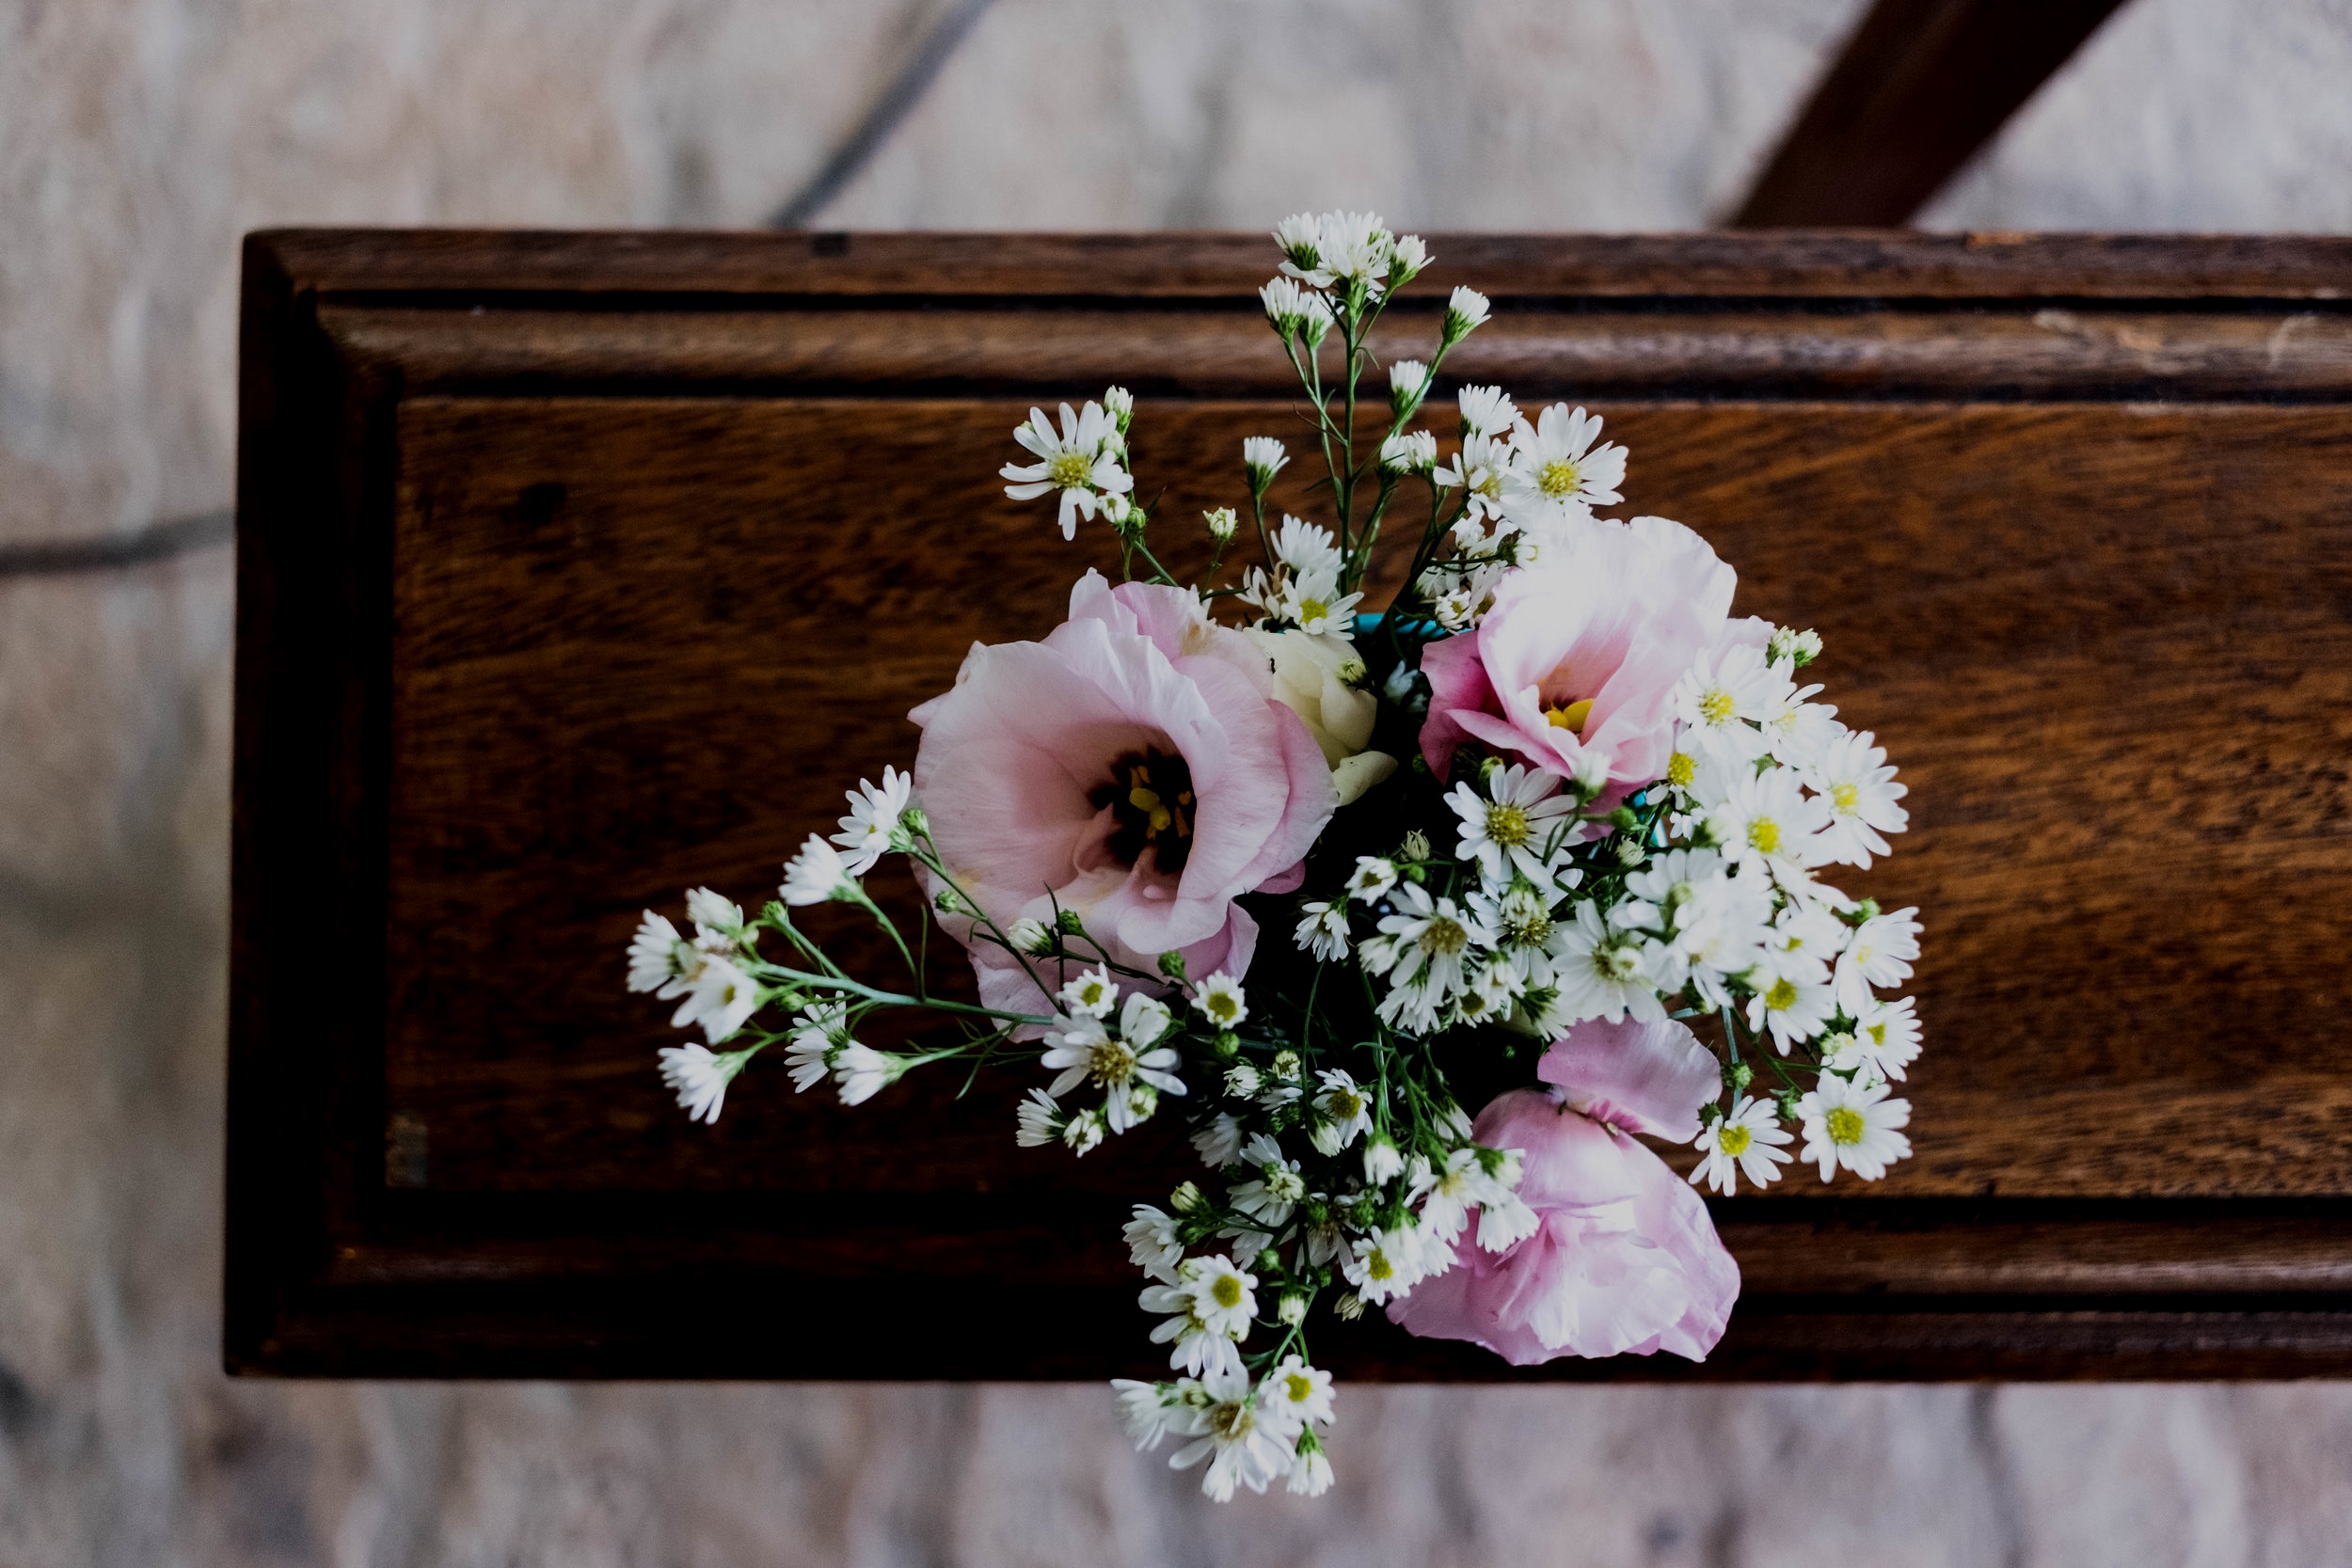 Funerals - Shared resources for performing funeral services